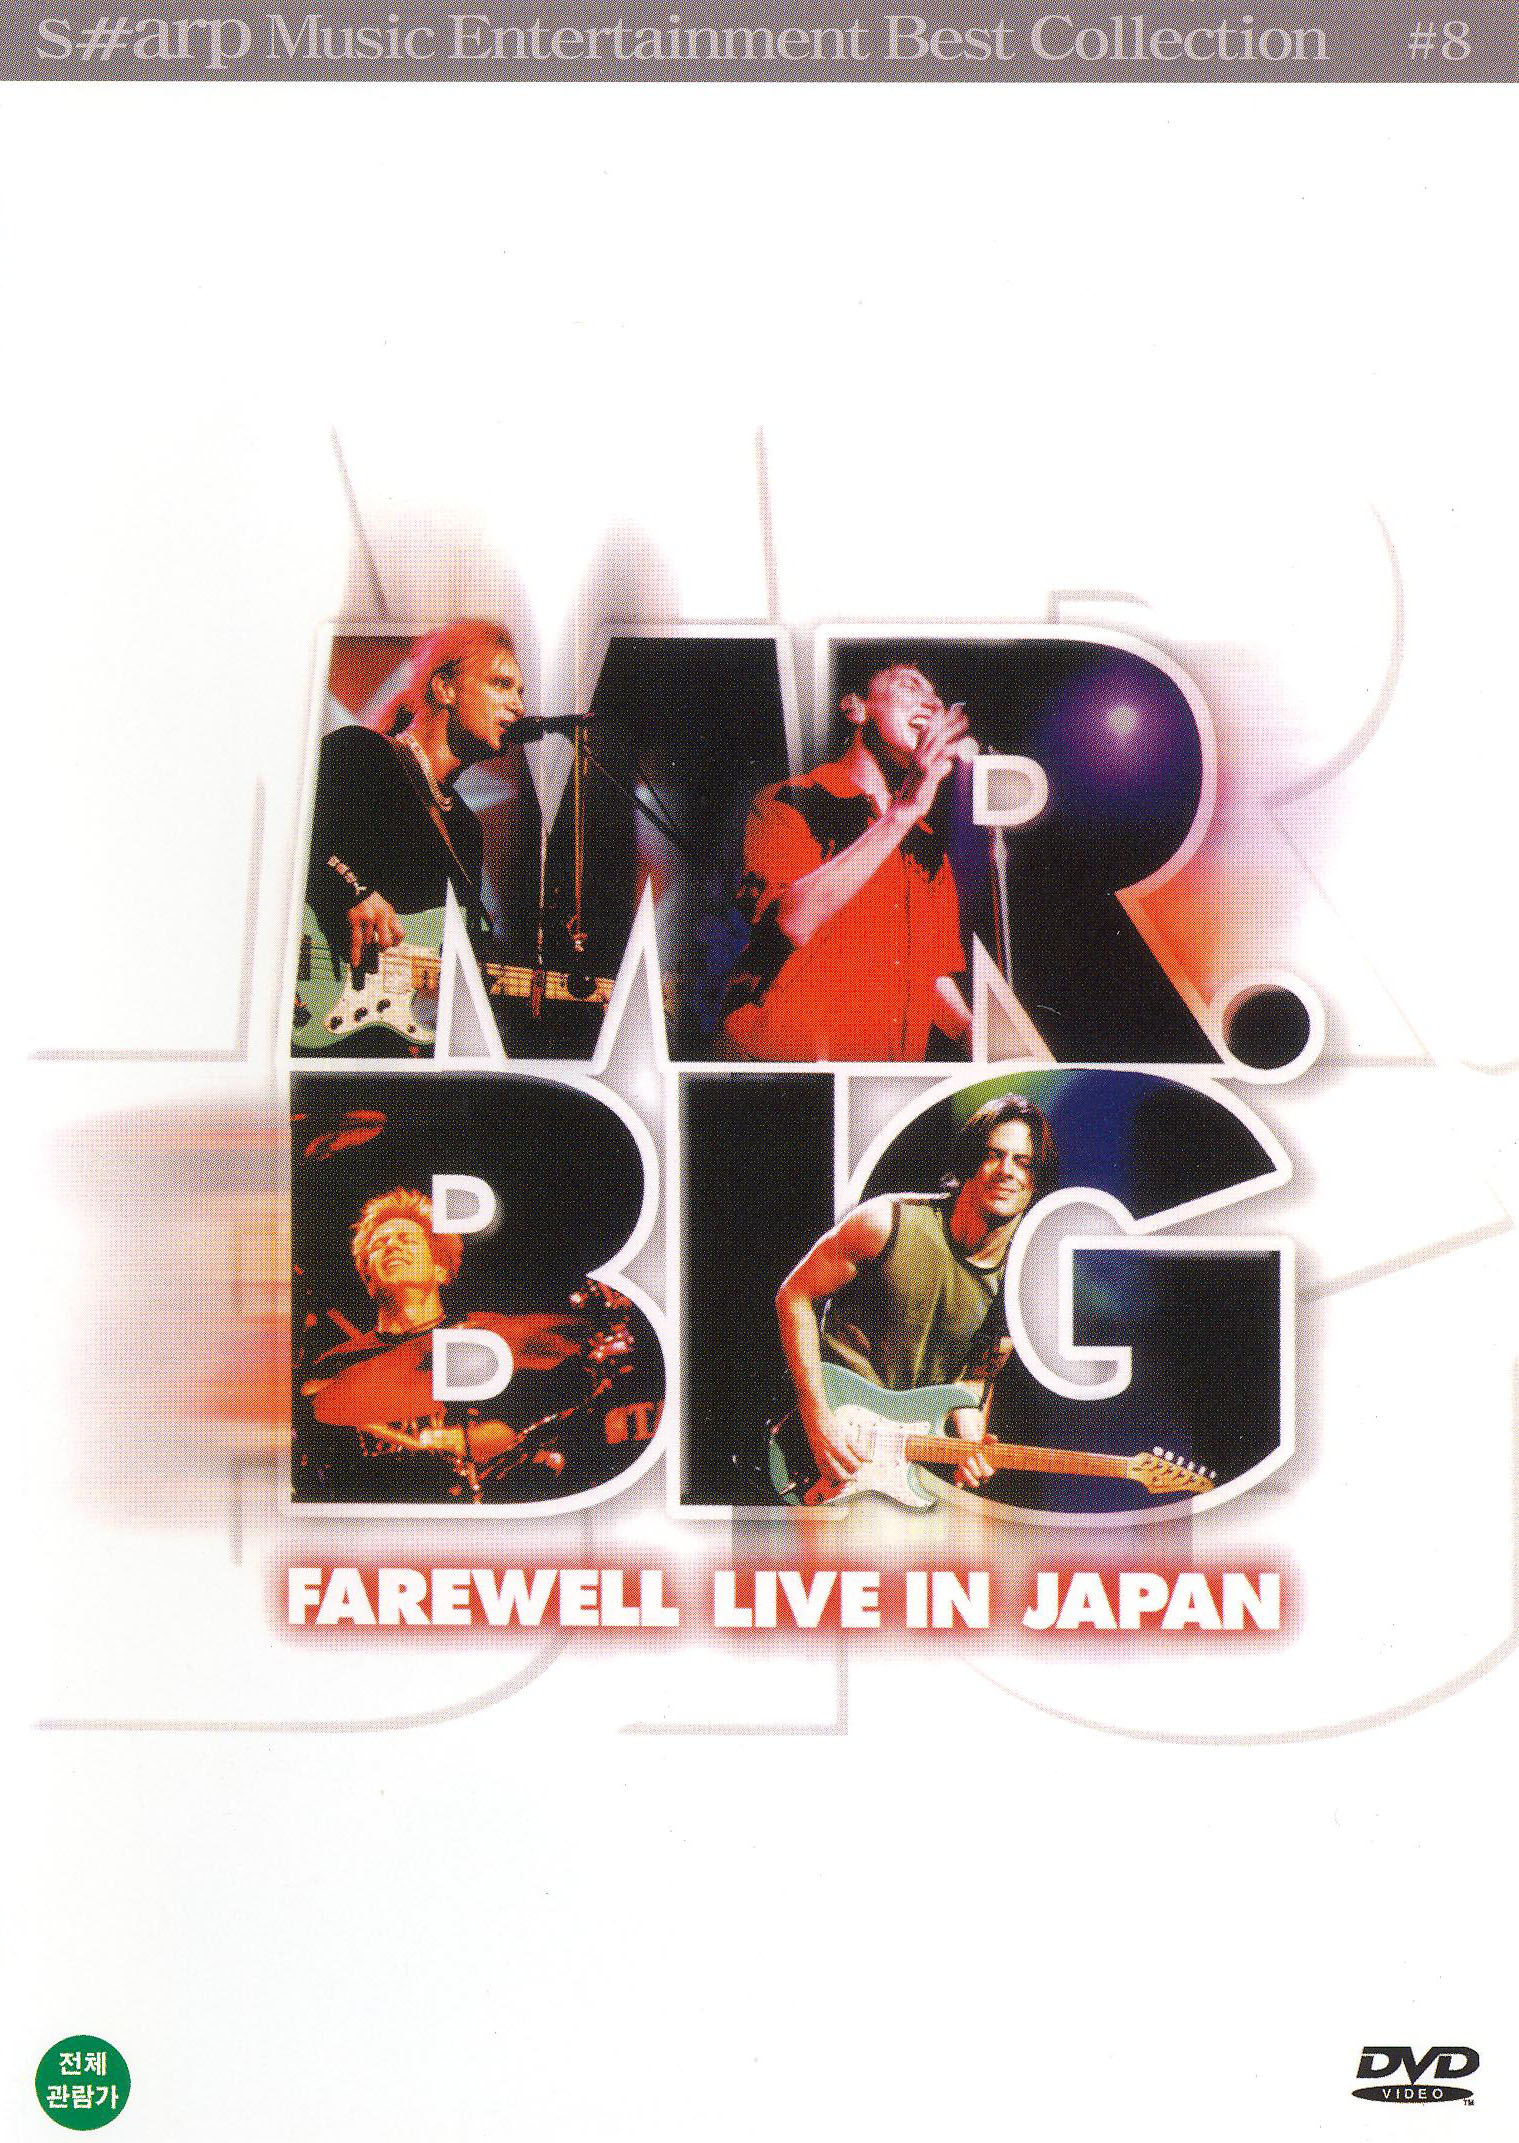 Mr. Big: Farewell - Live in Japan